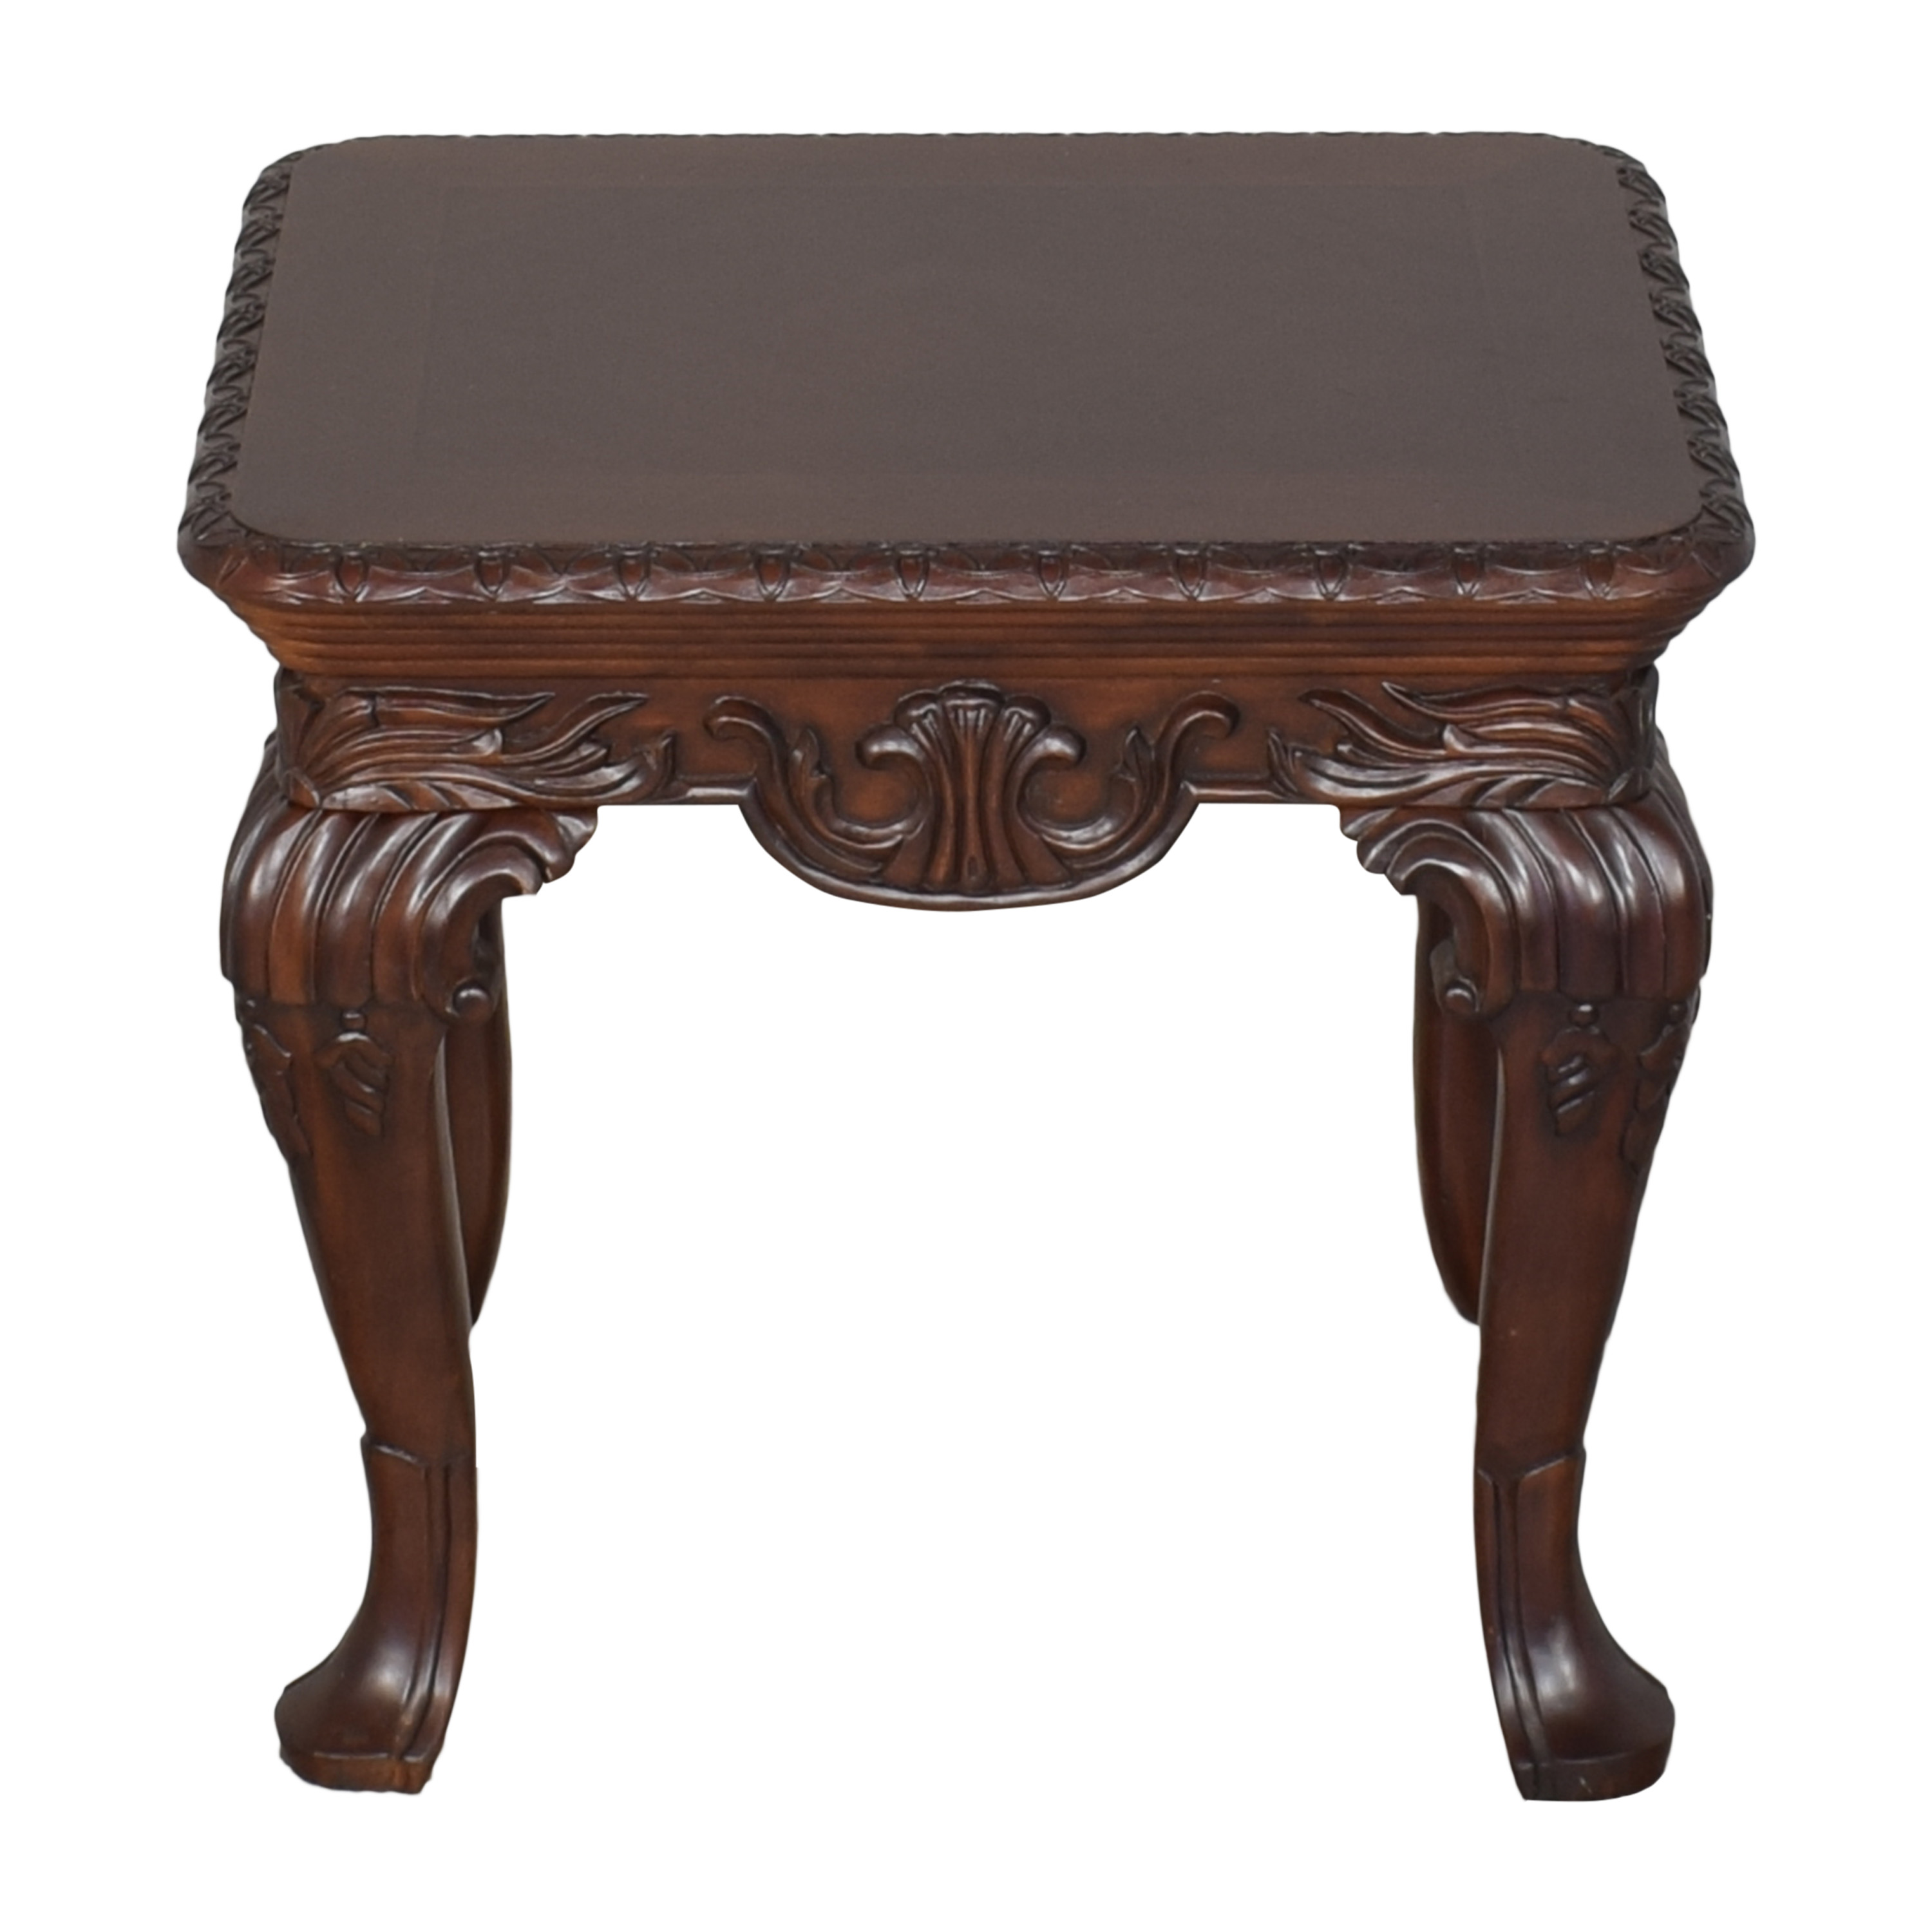 shop Thomasville Thomasville Carved Side Table online